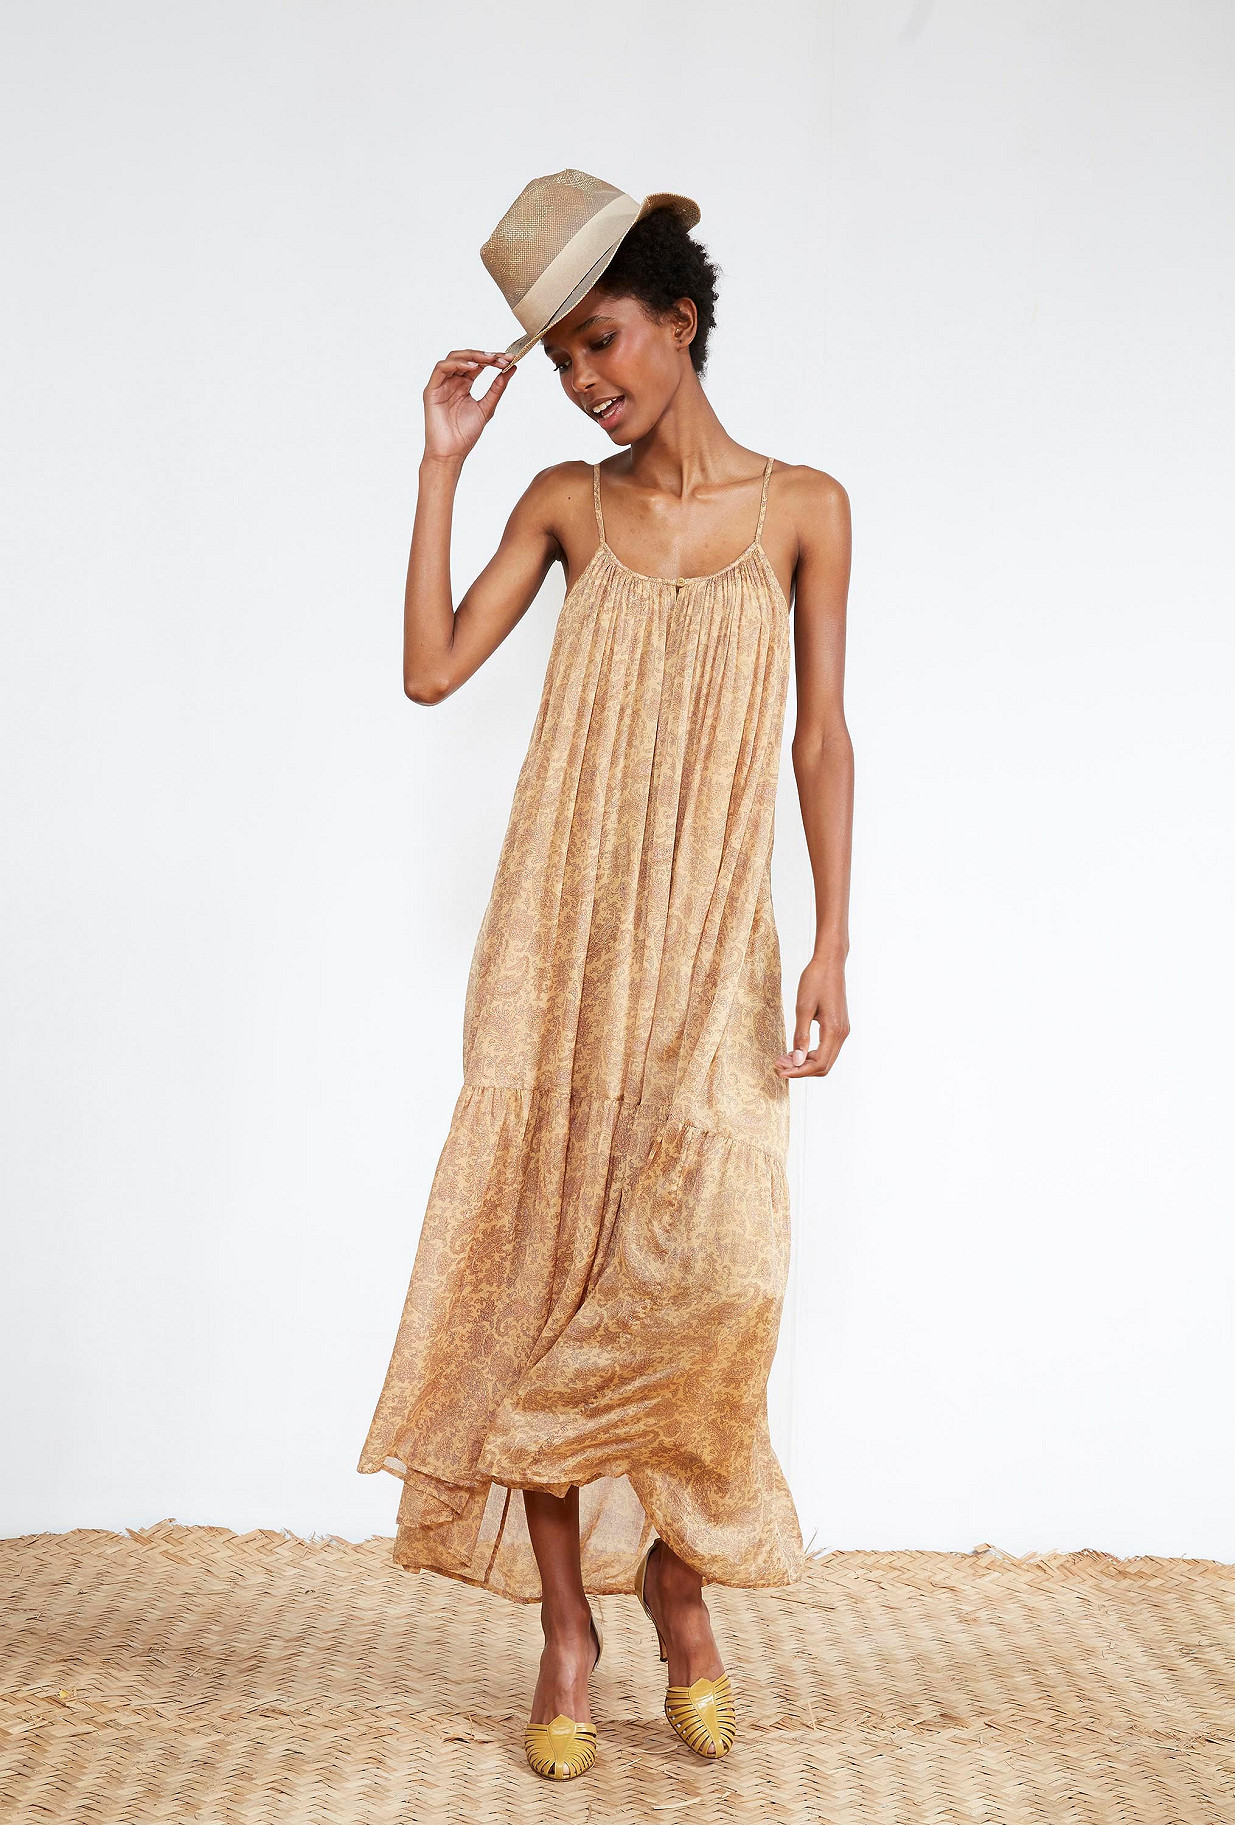 Nude DRESS Sonate Mes Demoiselles Paris